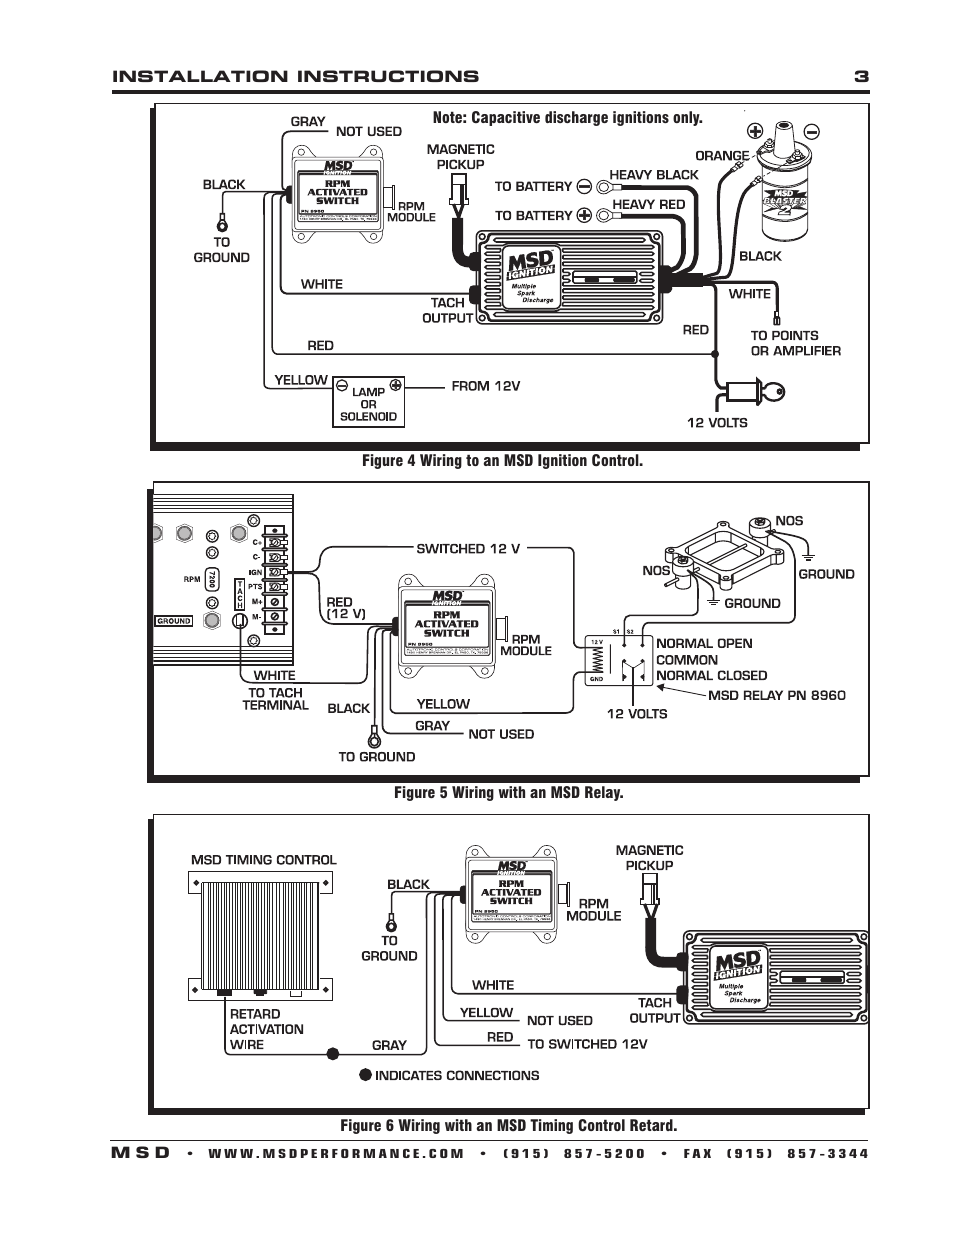 msd-8950-rpm-activated-switch-installation-page3 Timing Control Wiring Diagram on chevy s10 cruise, winch remote, for dol, 97 ford ranger cruise, honeywell ignition, f150 cruise, toyota cruise, chevrolet cruze, honda element cruise, gate access, hoist pendant,